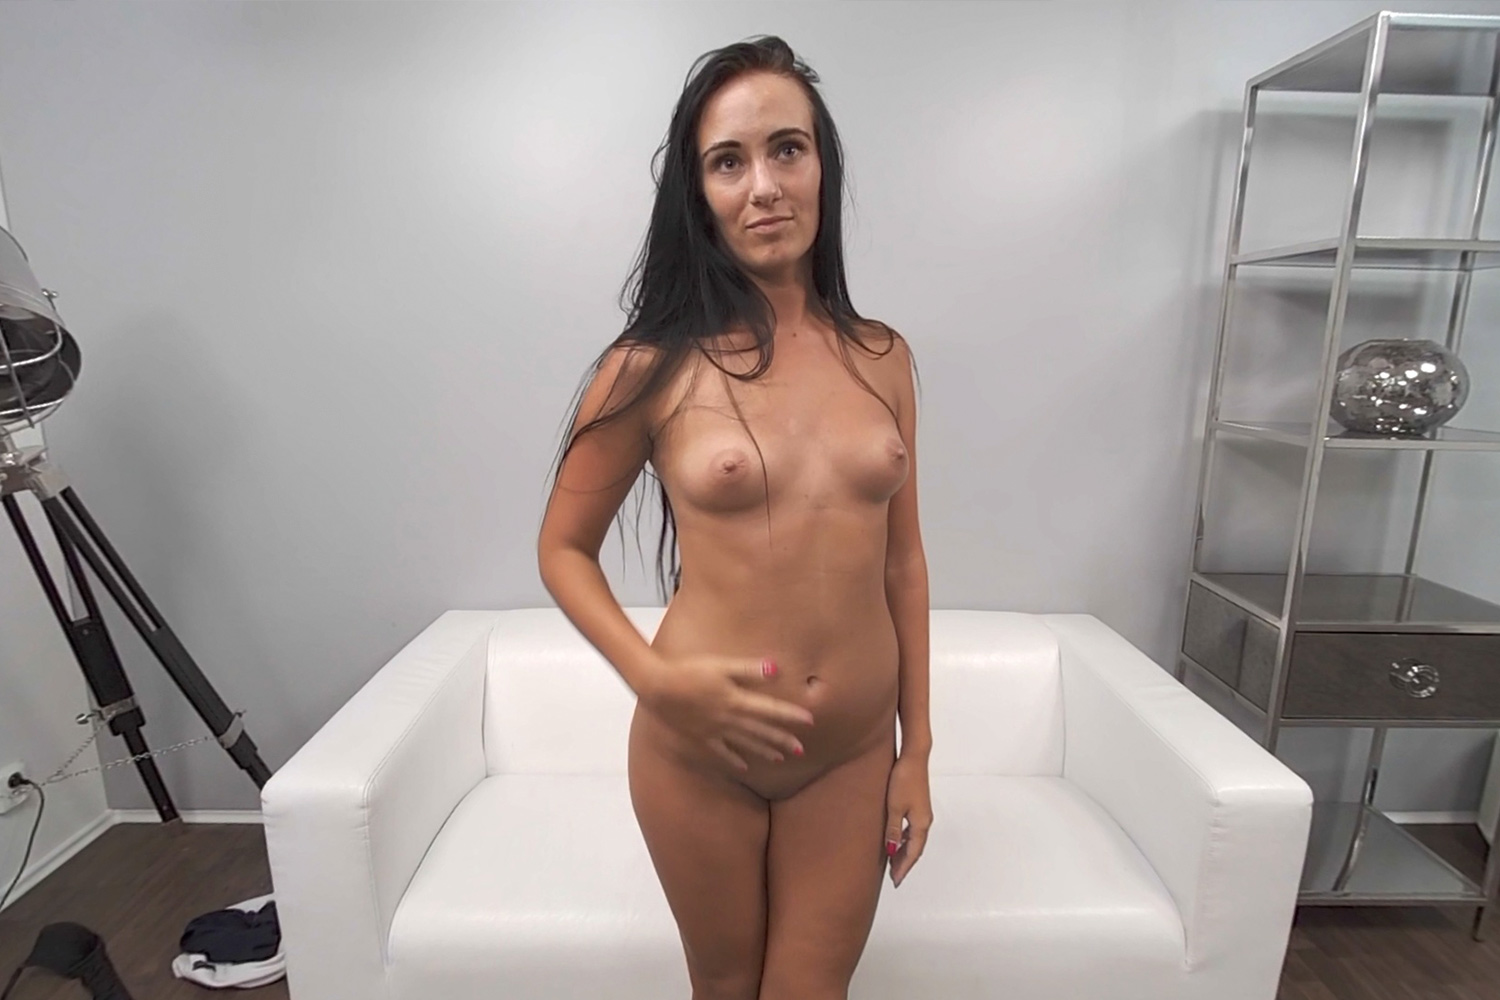 CzechCasting - beautiful Svetlana in 180 degrees VR Porn Video